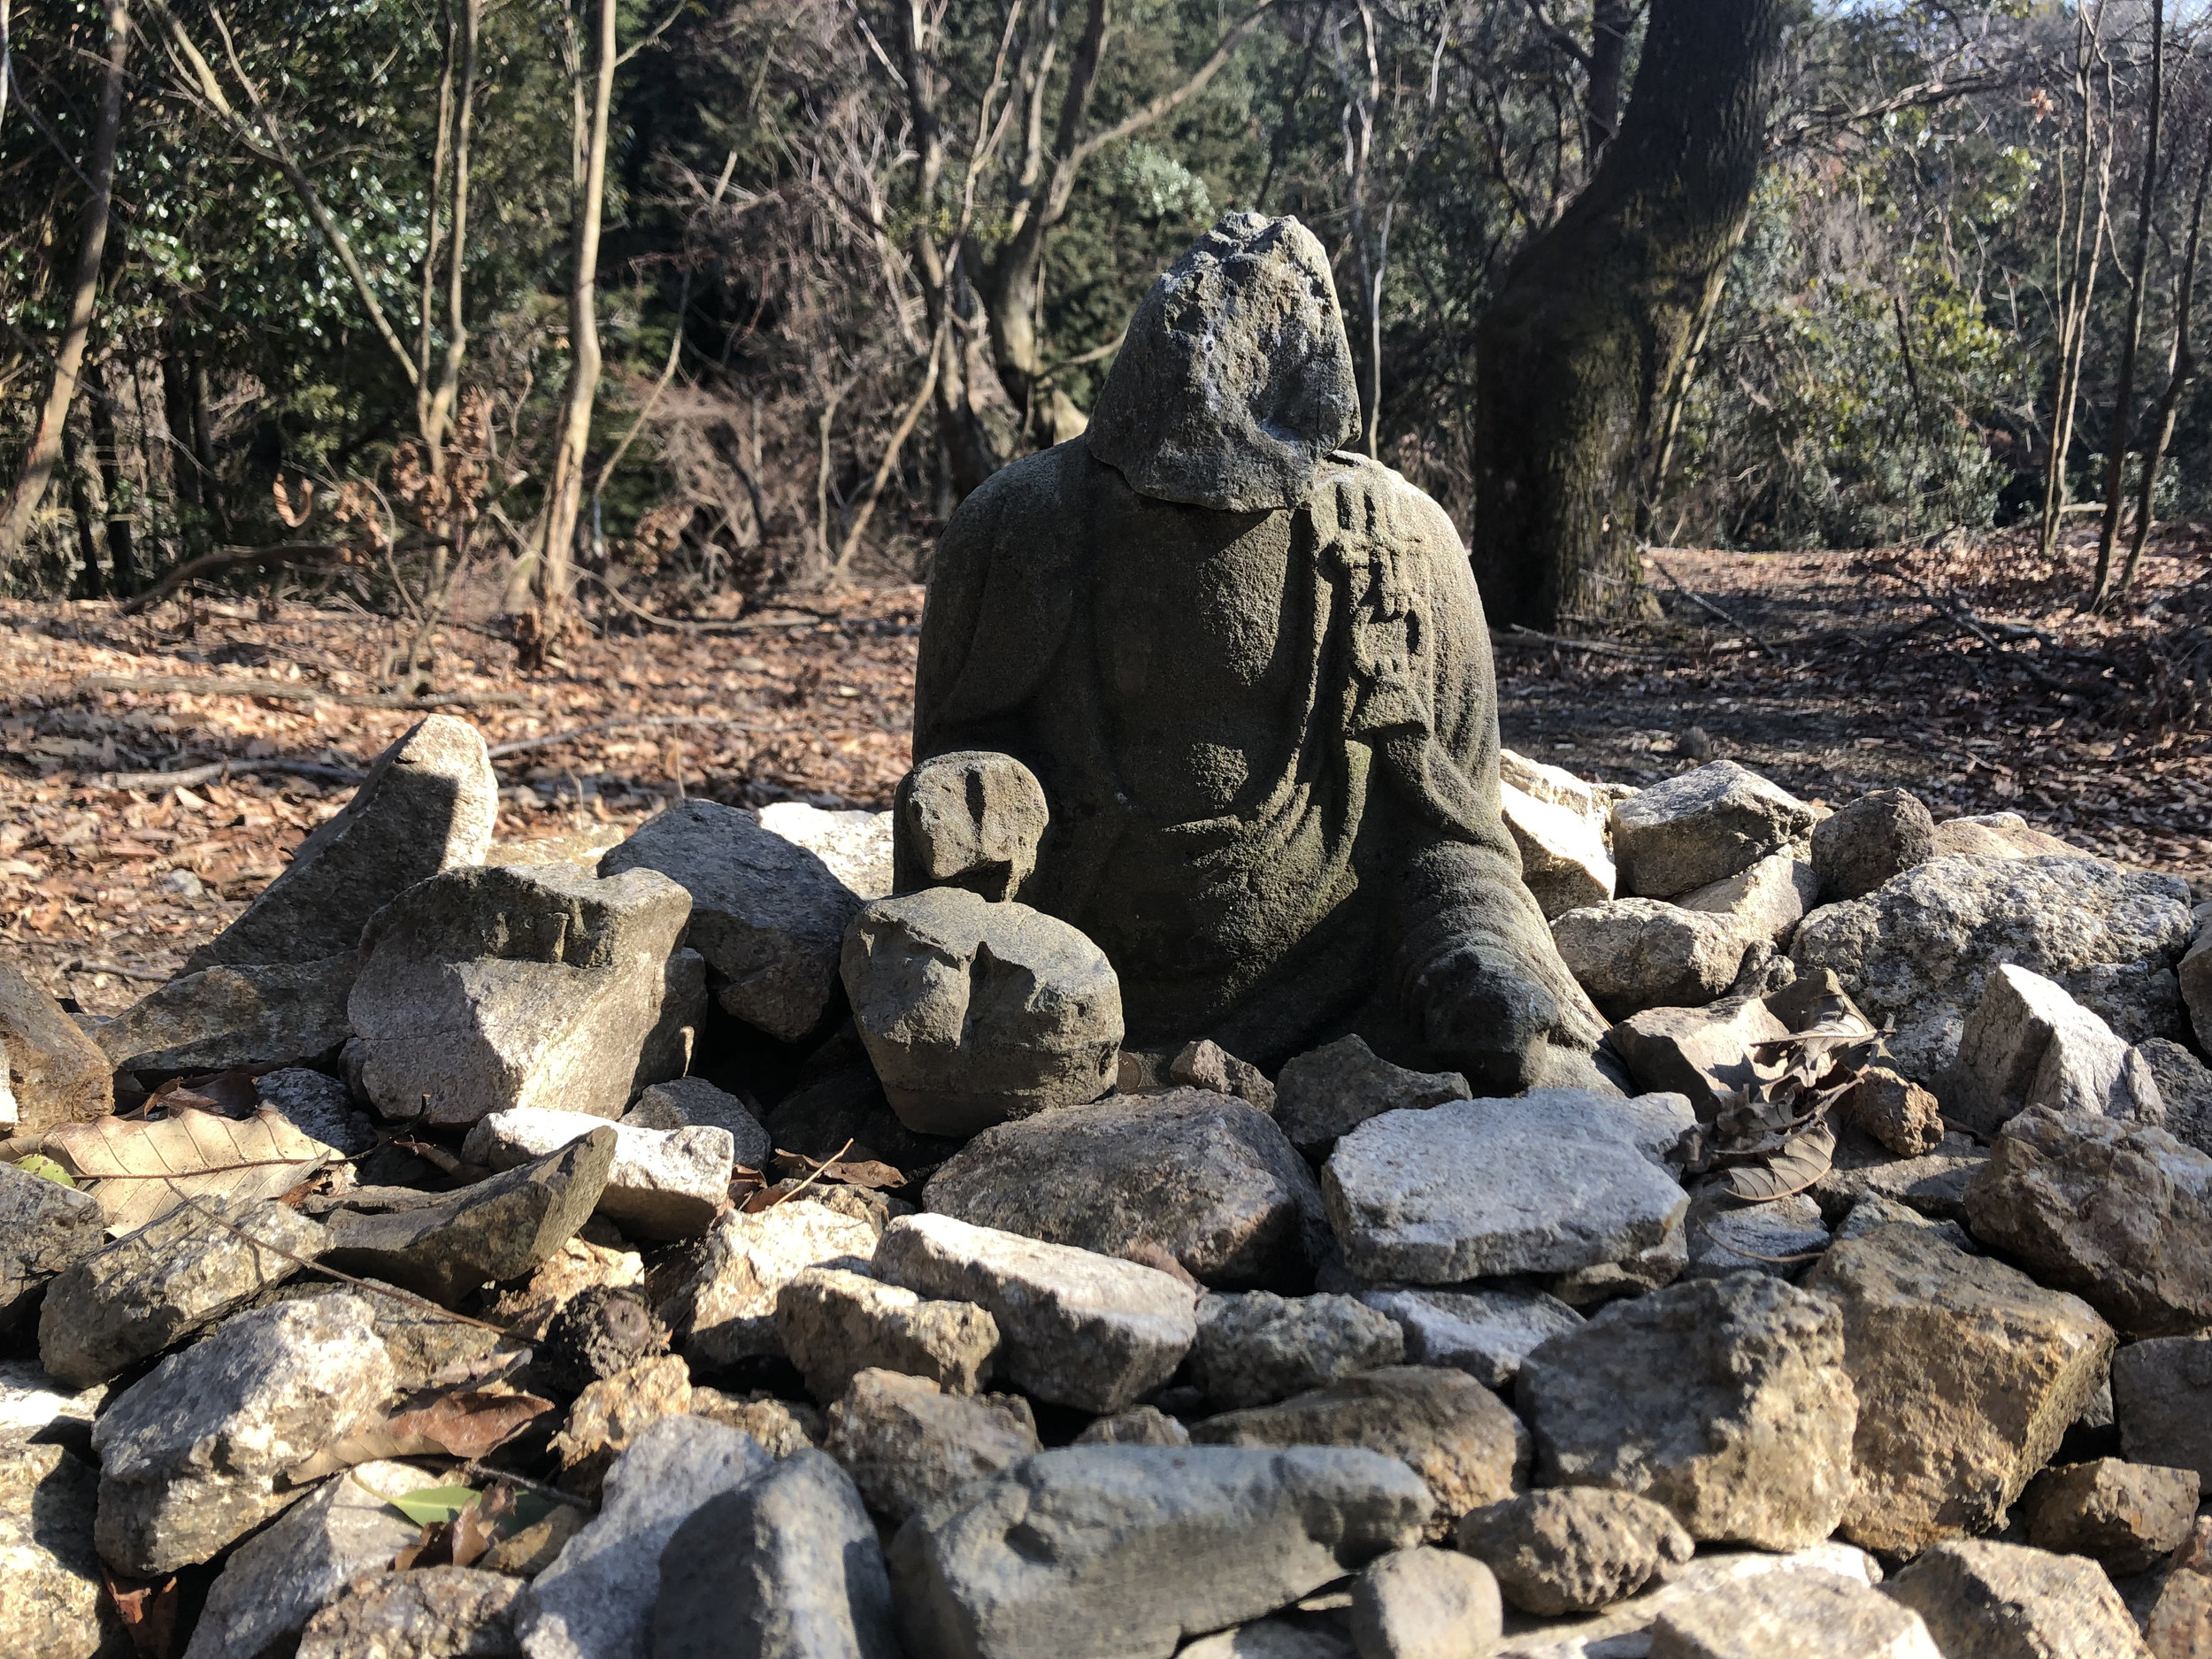 A small statue on the Kirarazaka Trail between Mt. Hiei and the city of Kyoto.